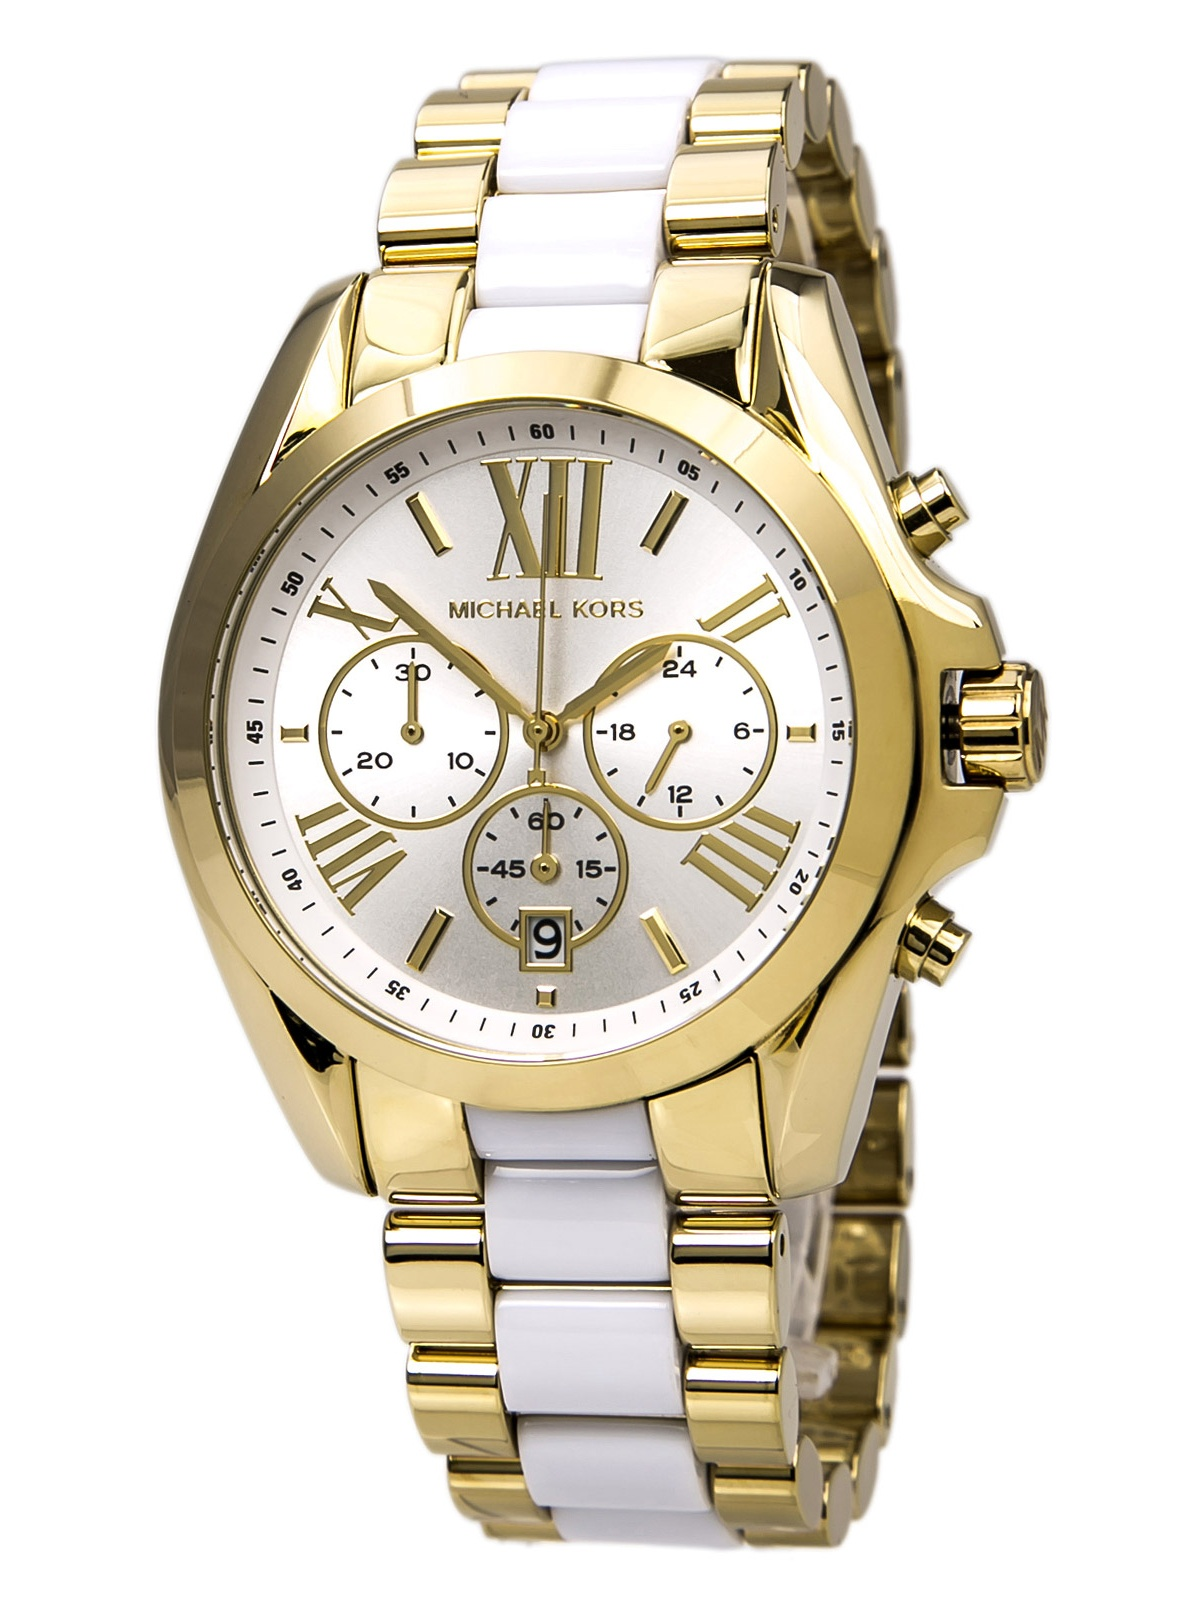 Michael Kors MK5743 Women's Bradshaw White Dial Two Tone Gold Plated Steel Bracelet Chronograph Watch